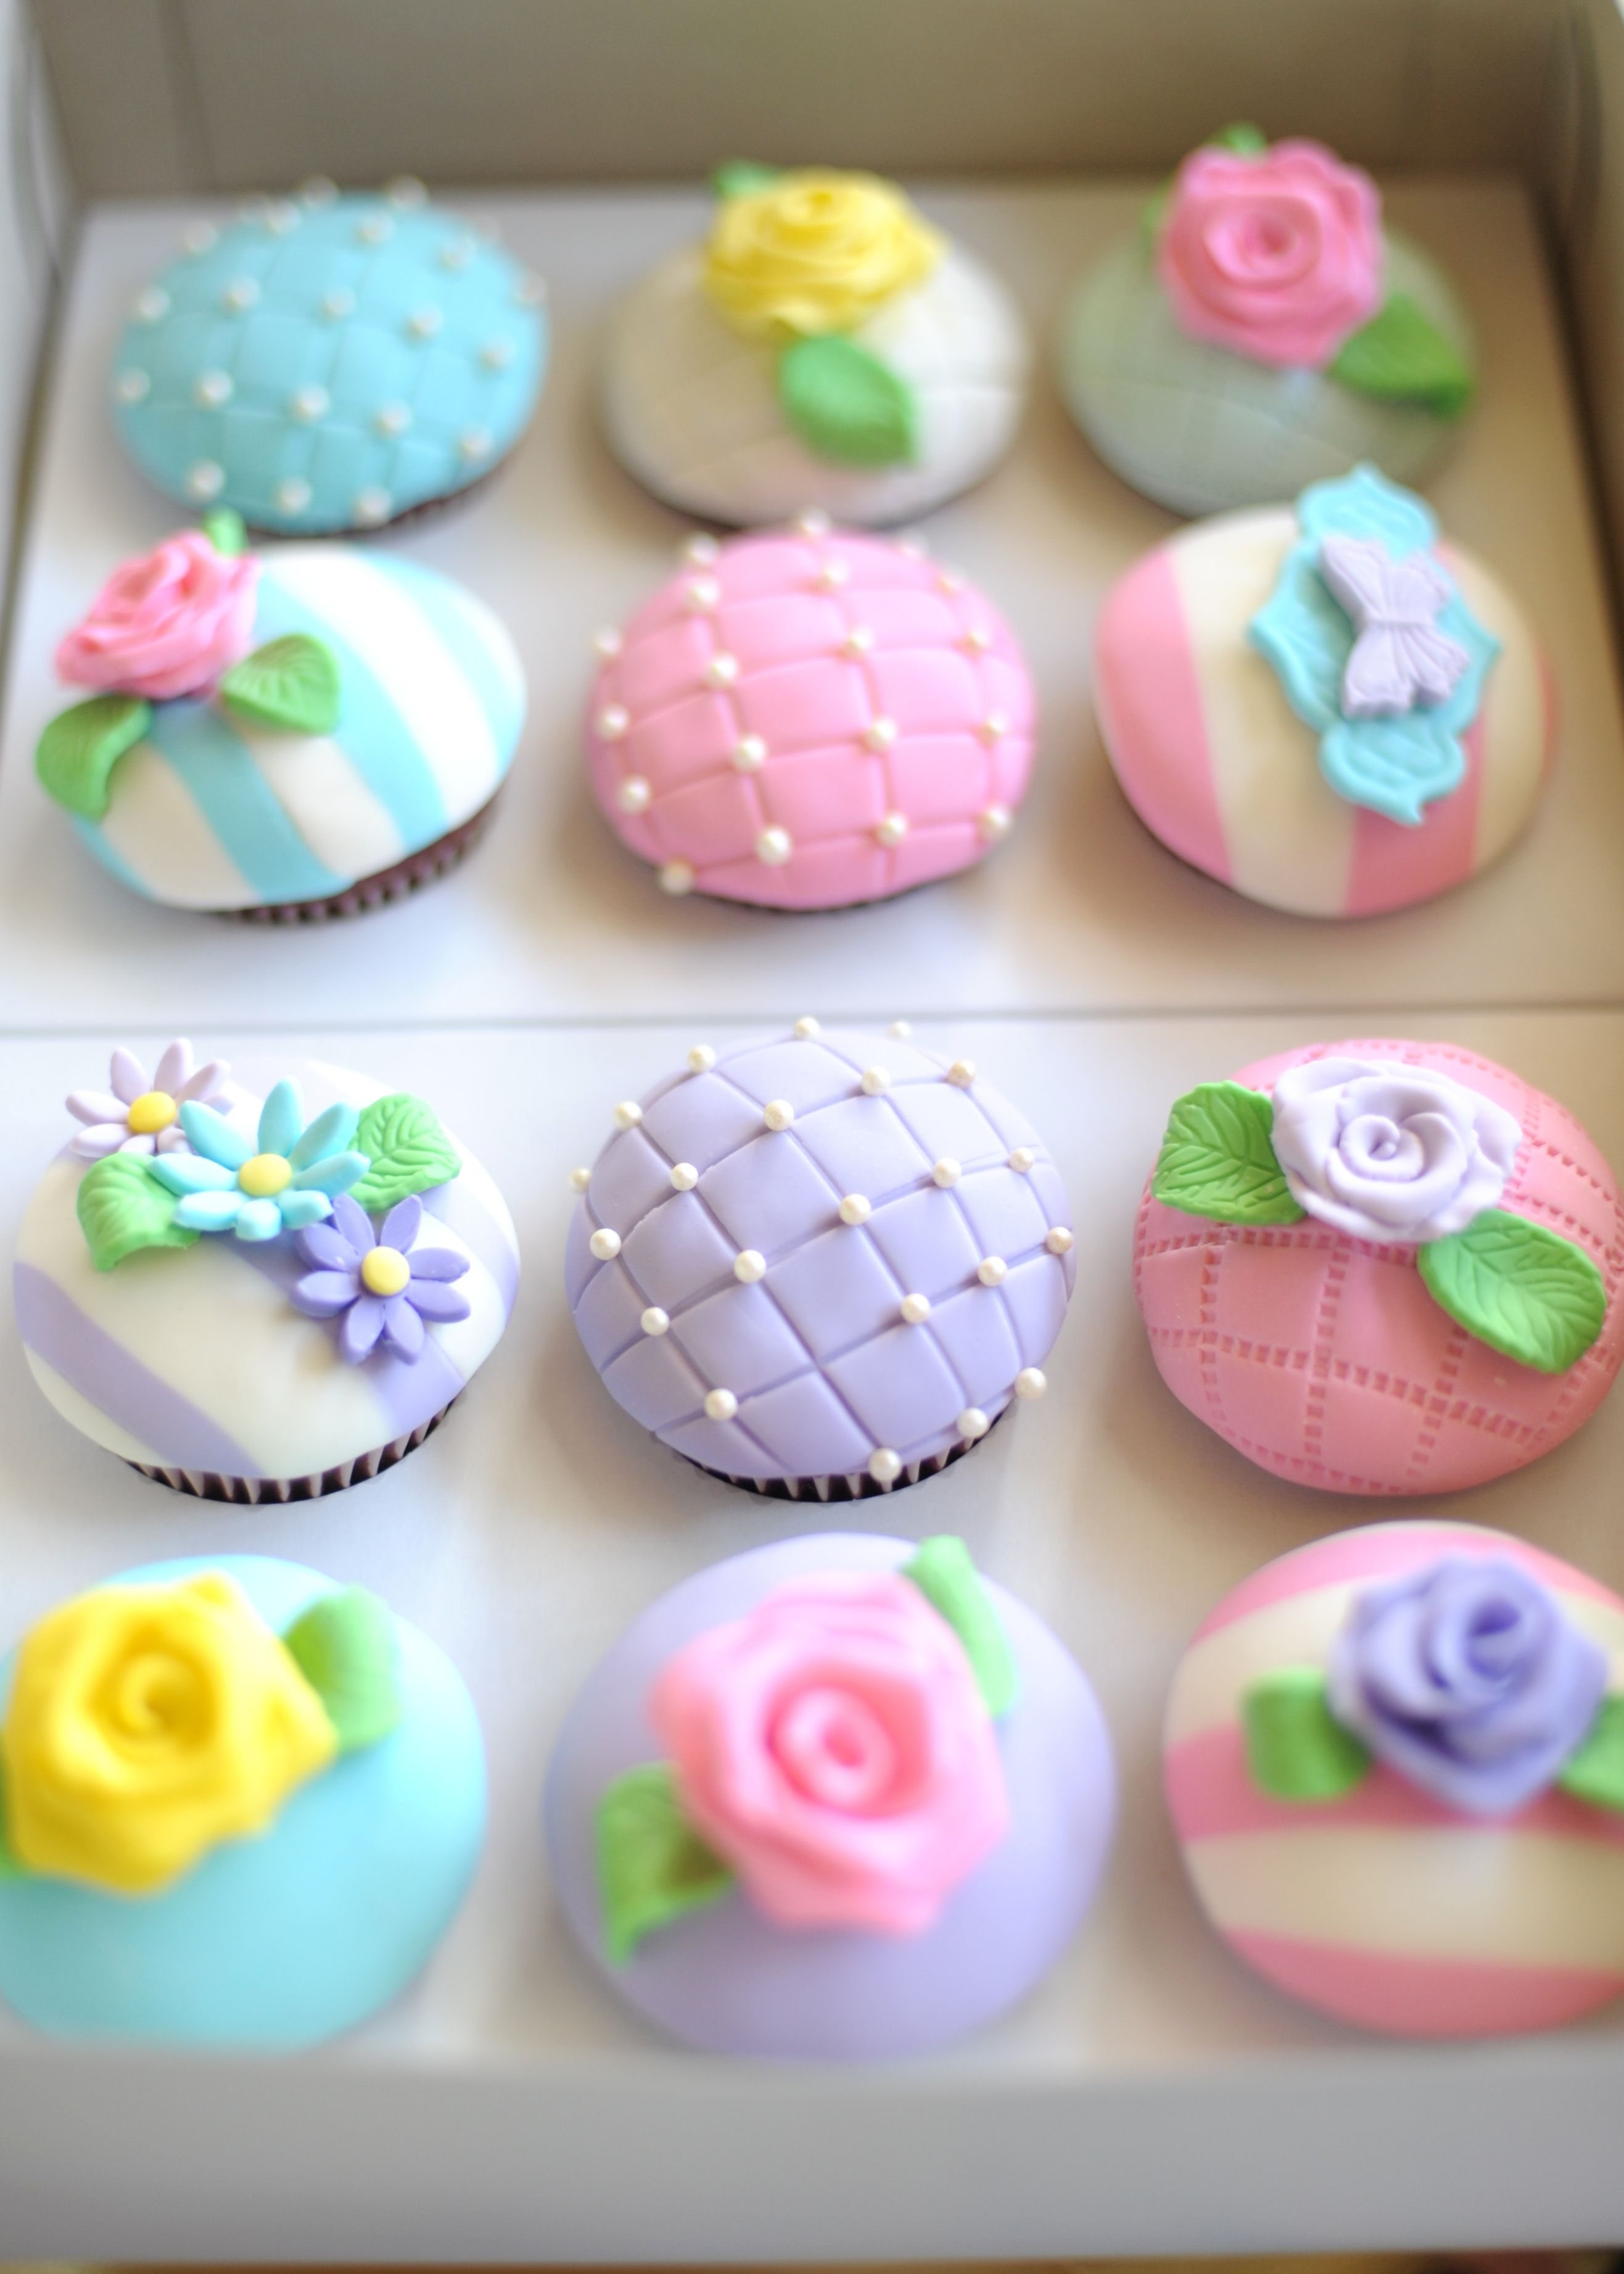 Decoration Pate A Sucre Cupcake Cupcakes For A Tea Party Tea Party Pinterest